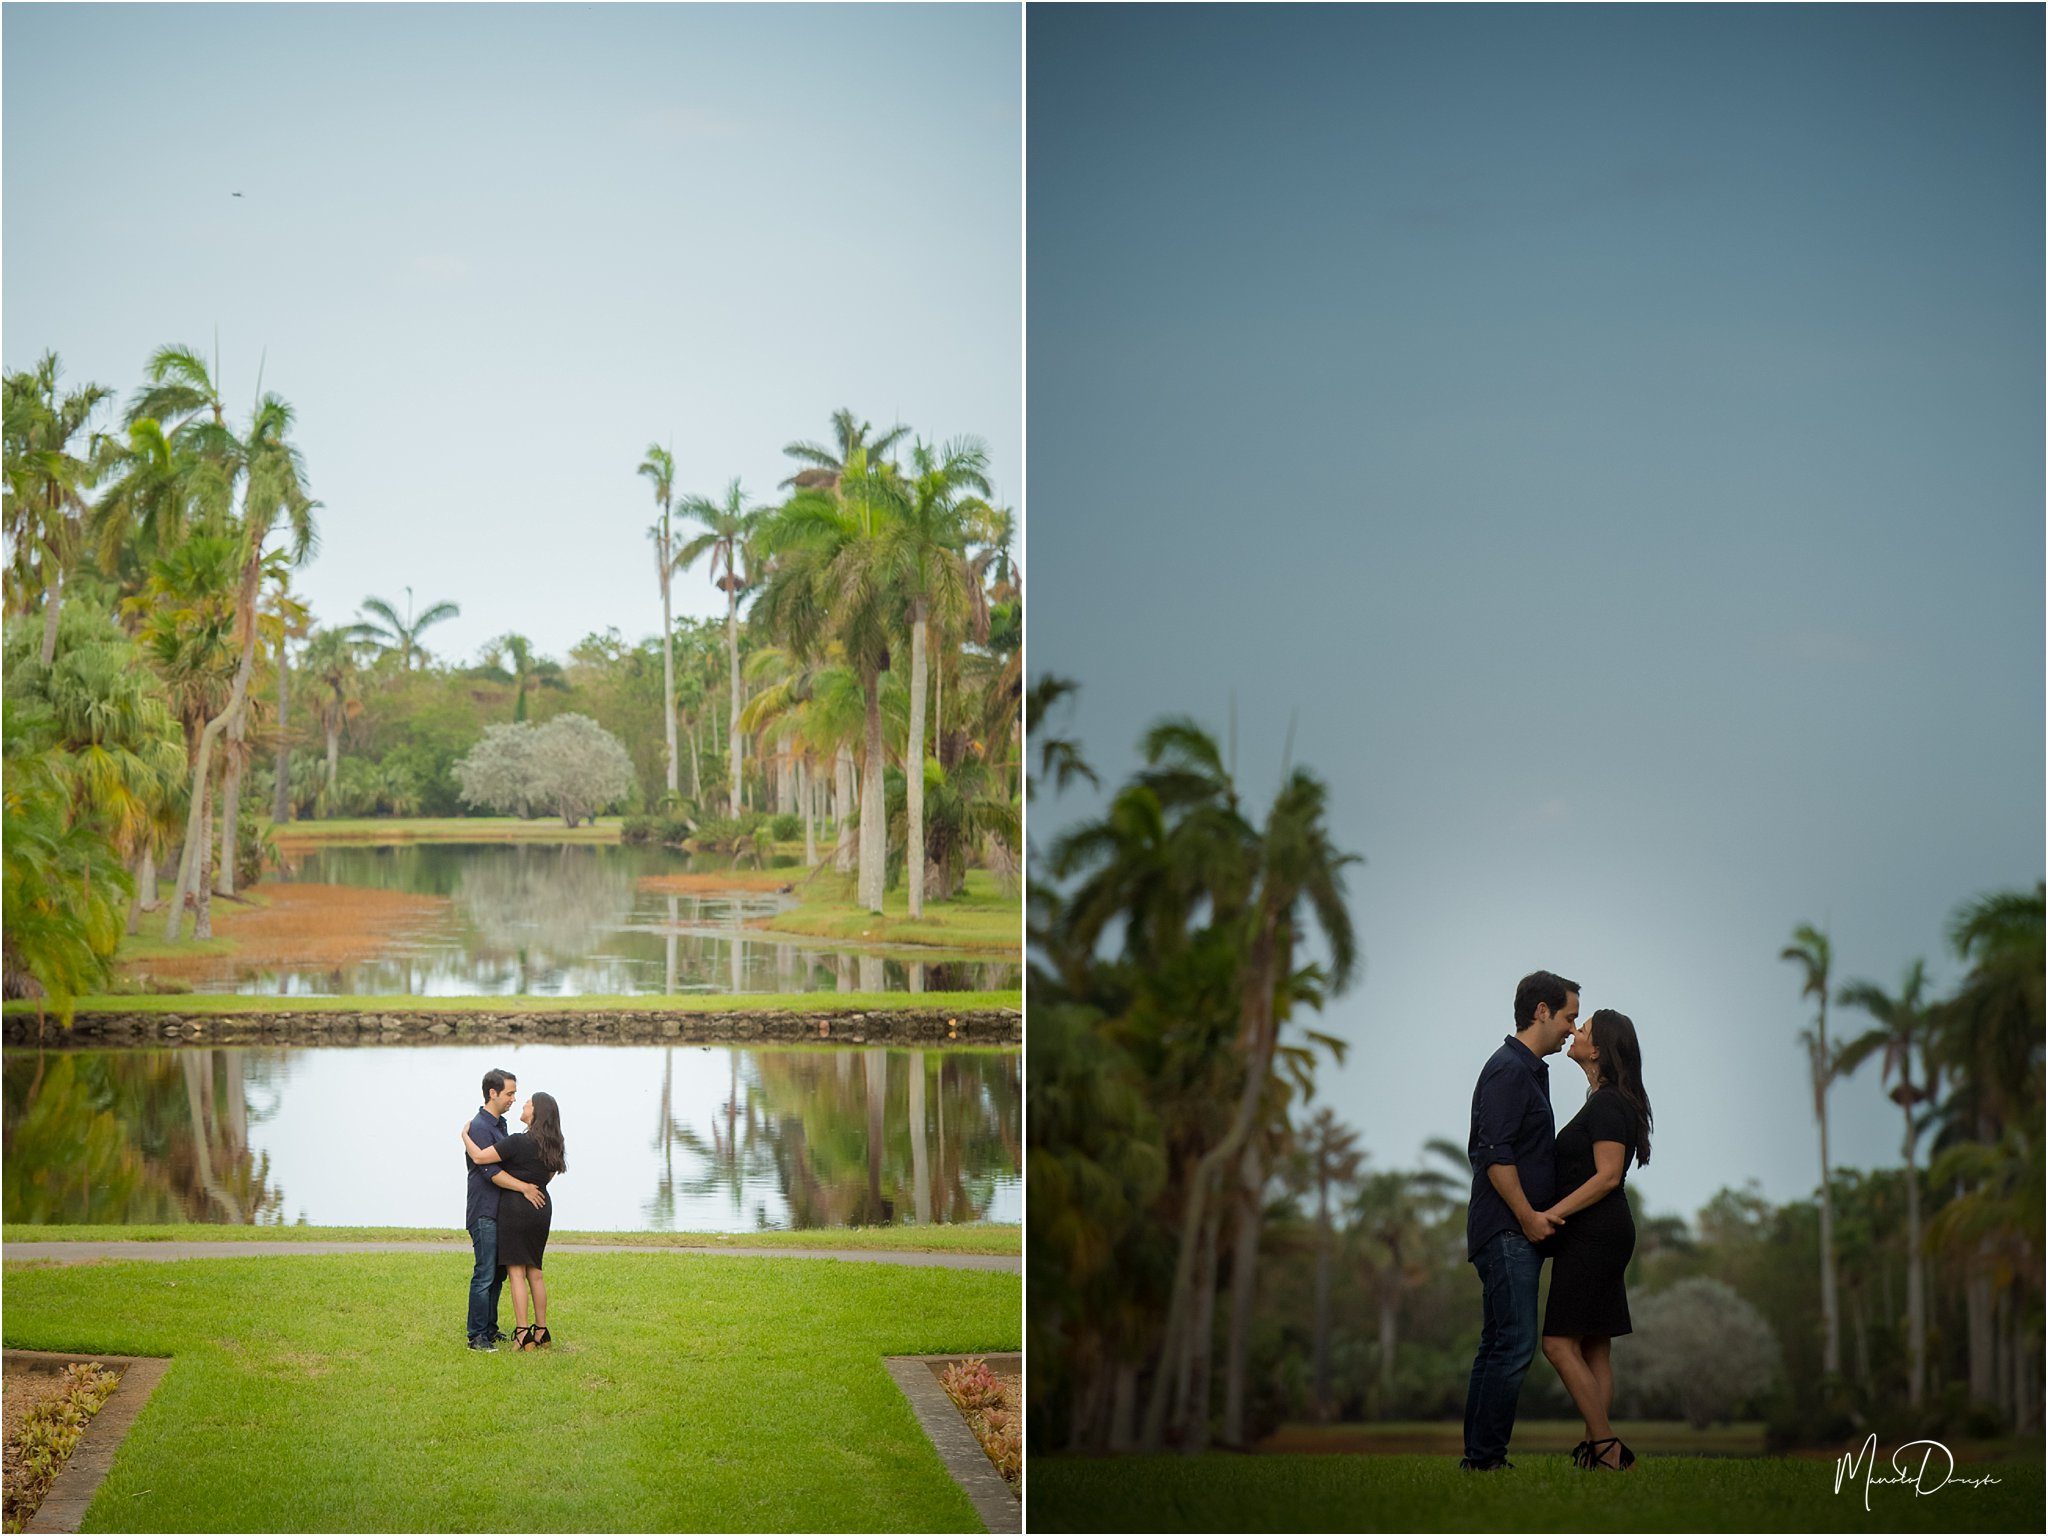 0223_ManoloDoreste_InFocusStudios_Wedding_Family_Photography_Miami_MiamiPhotographer.jpg